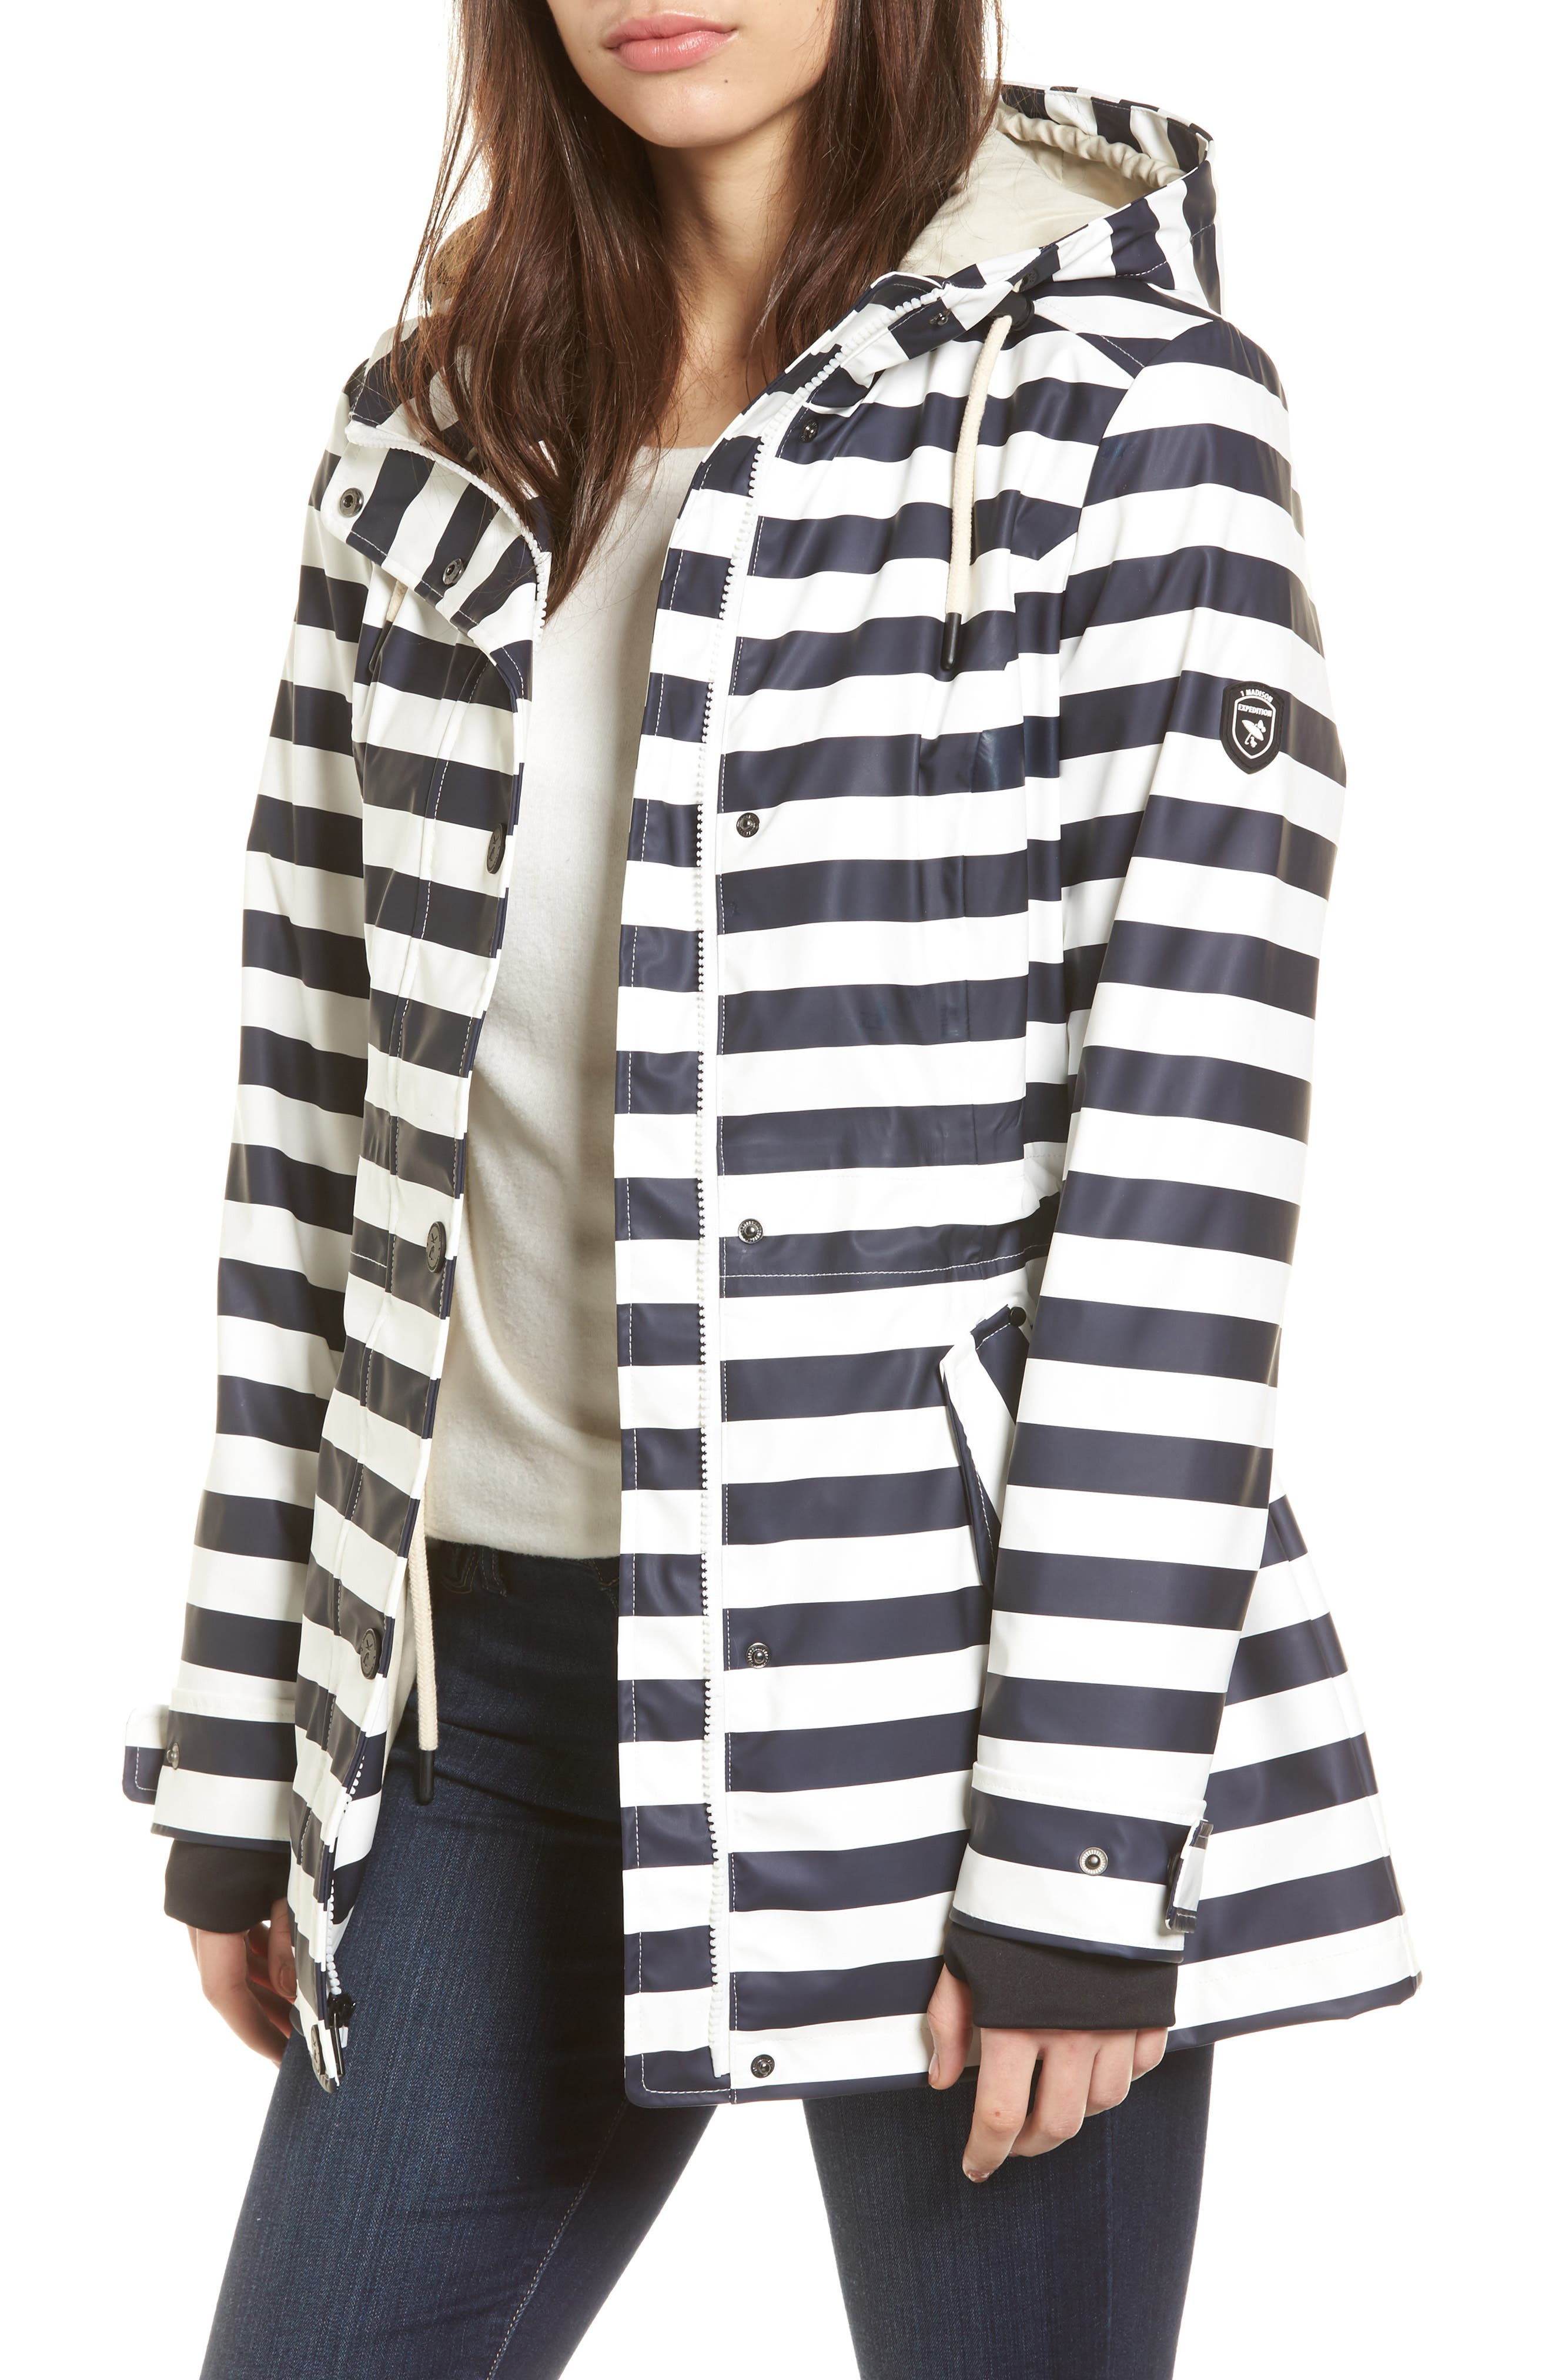 30 Stripe Hooded Raincoat,                             Main thumbnail 1, color,                             400